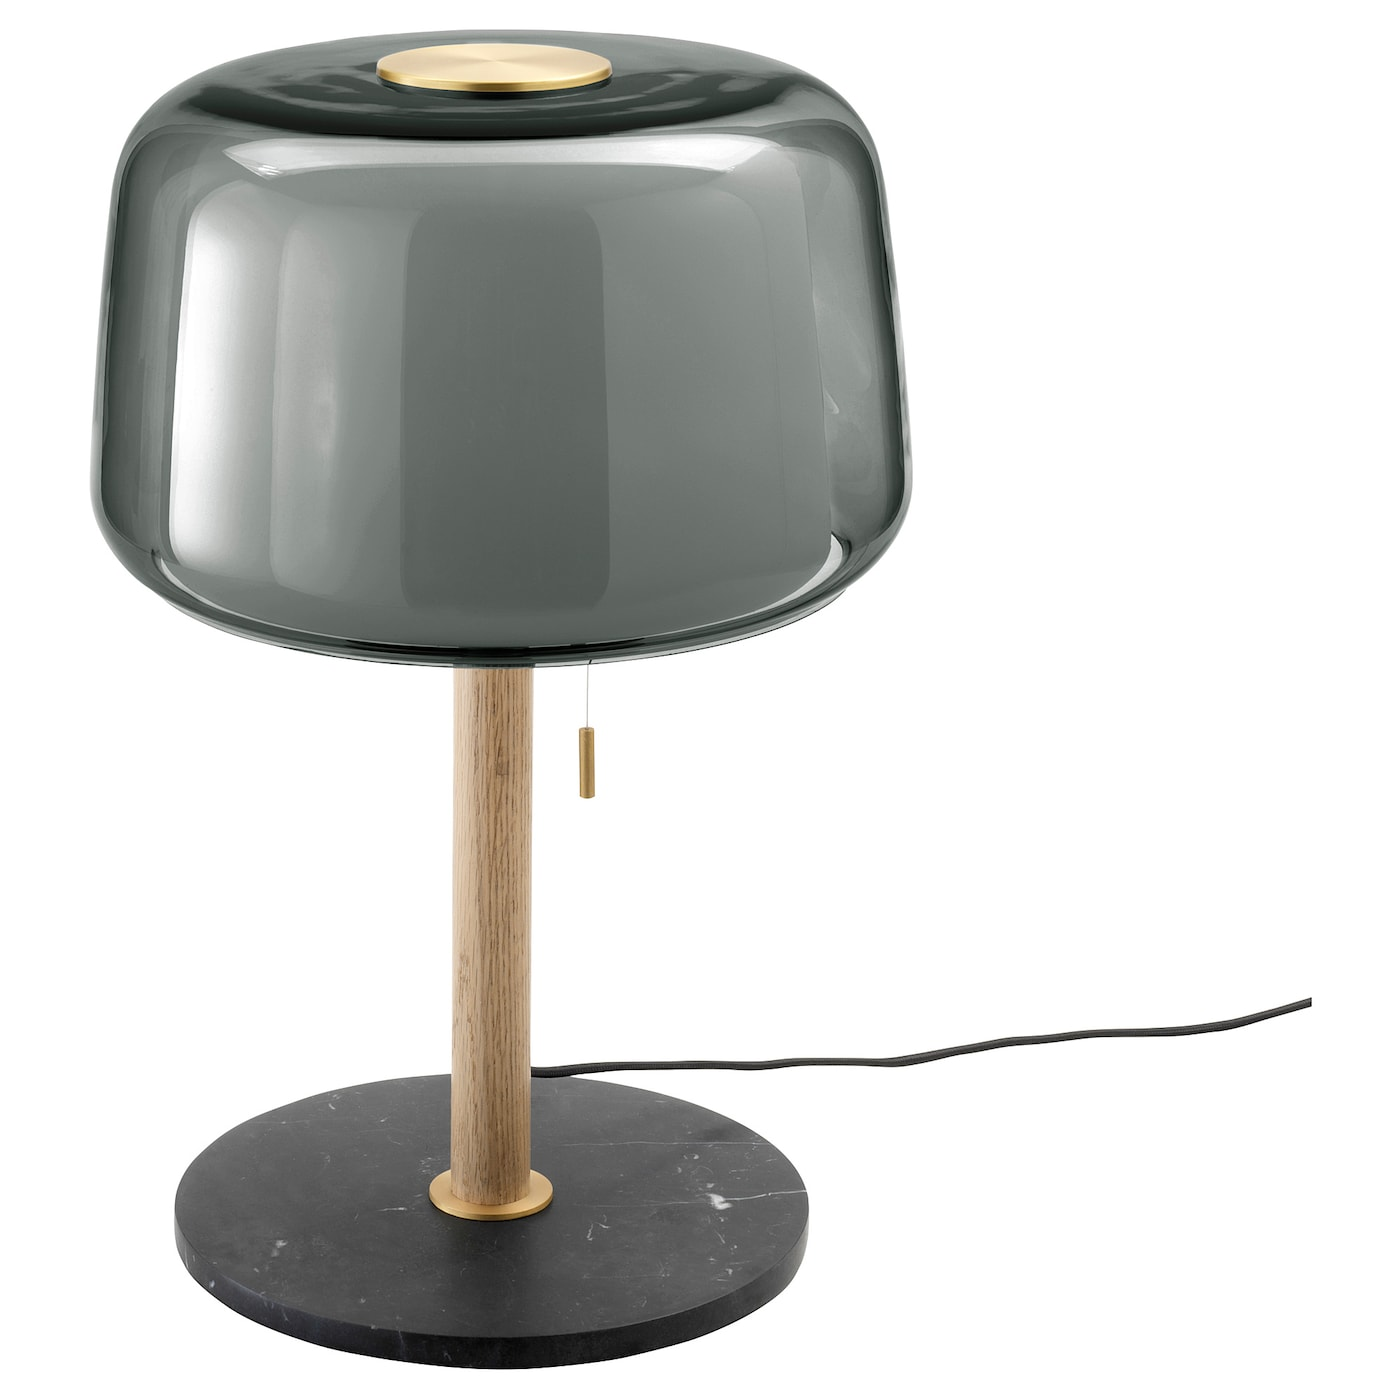 IKEA EVEDAL table lamp The lamp stands stable thanks to the heavy base in marble.